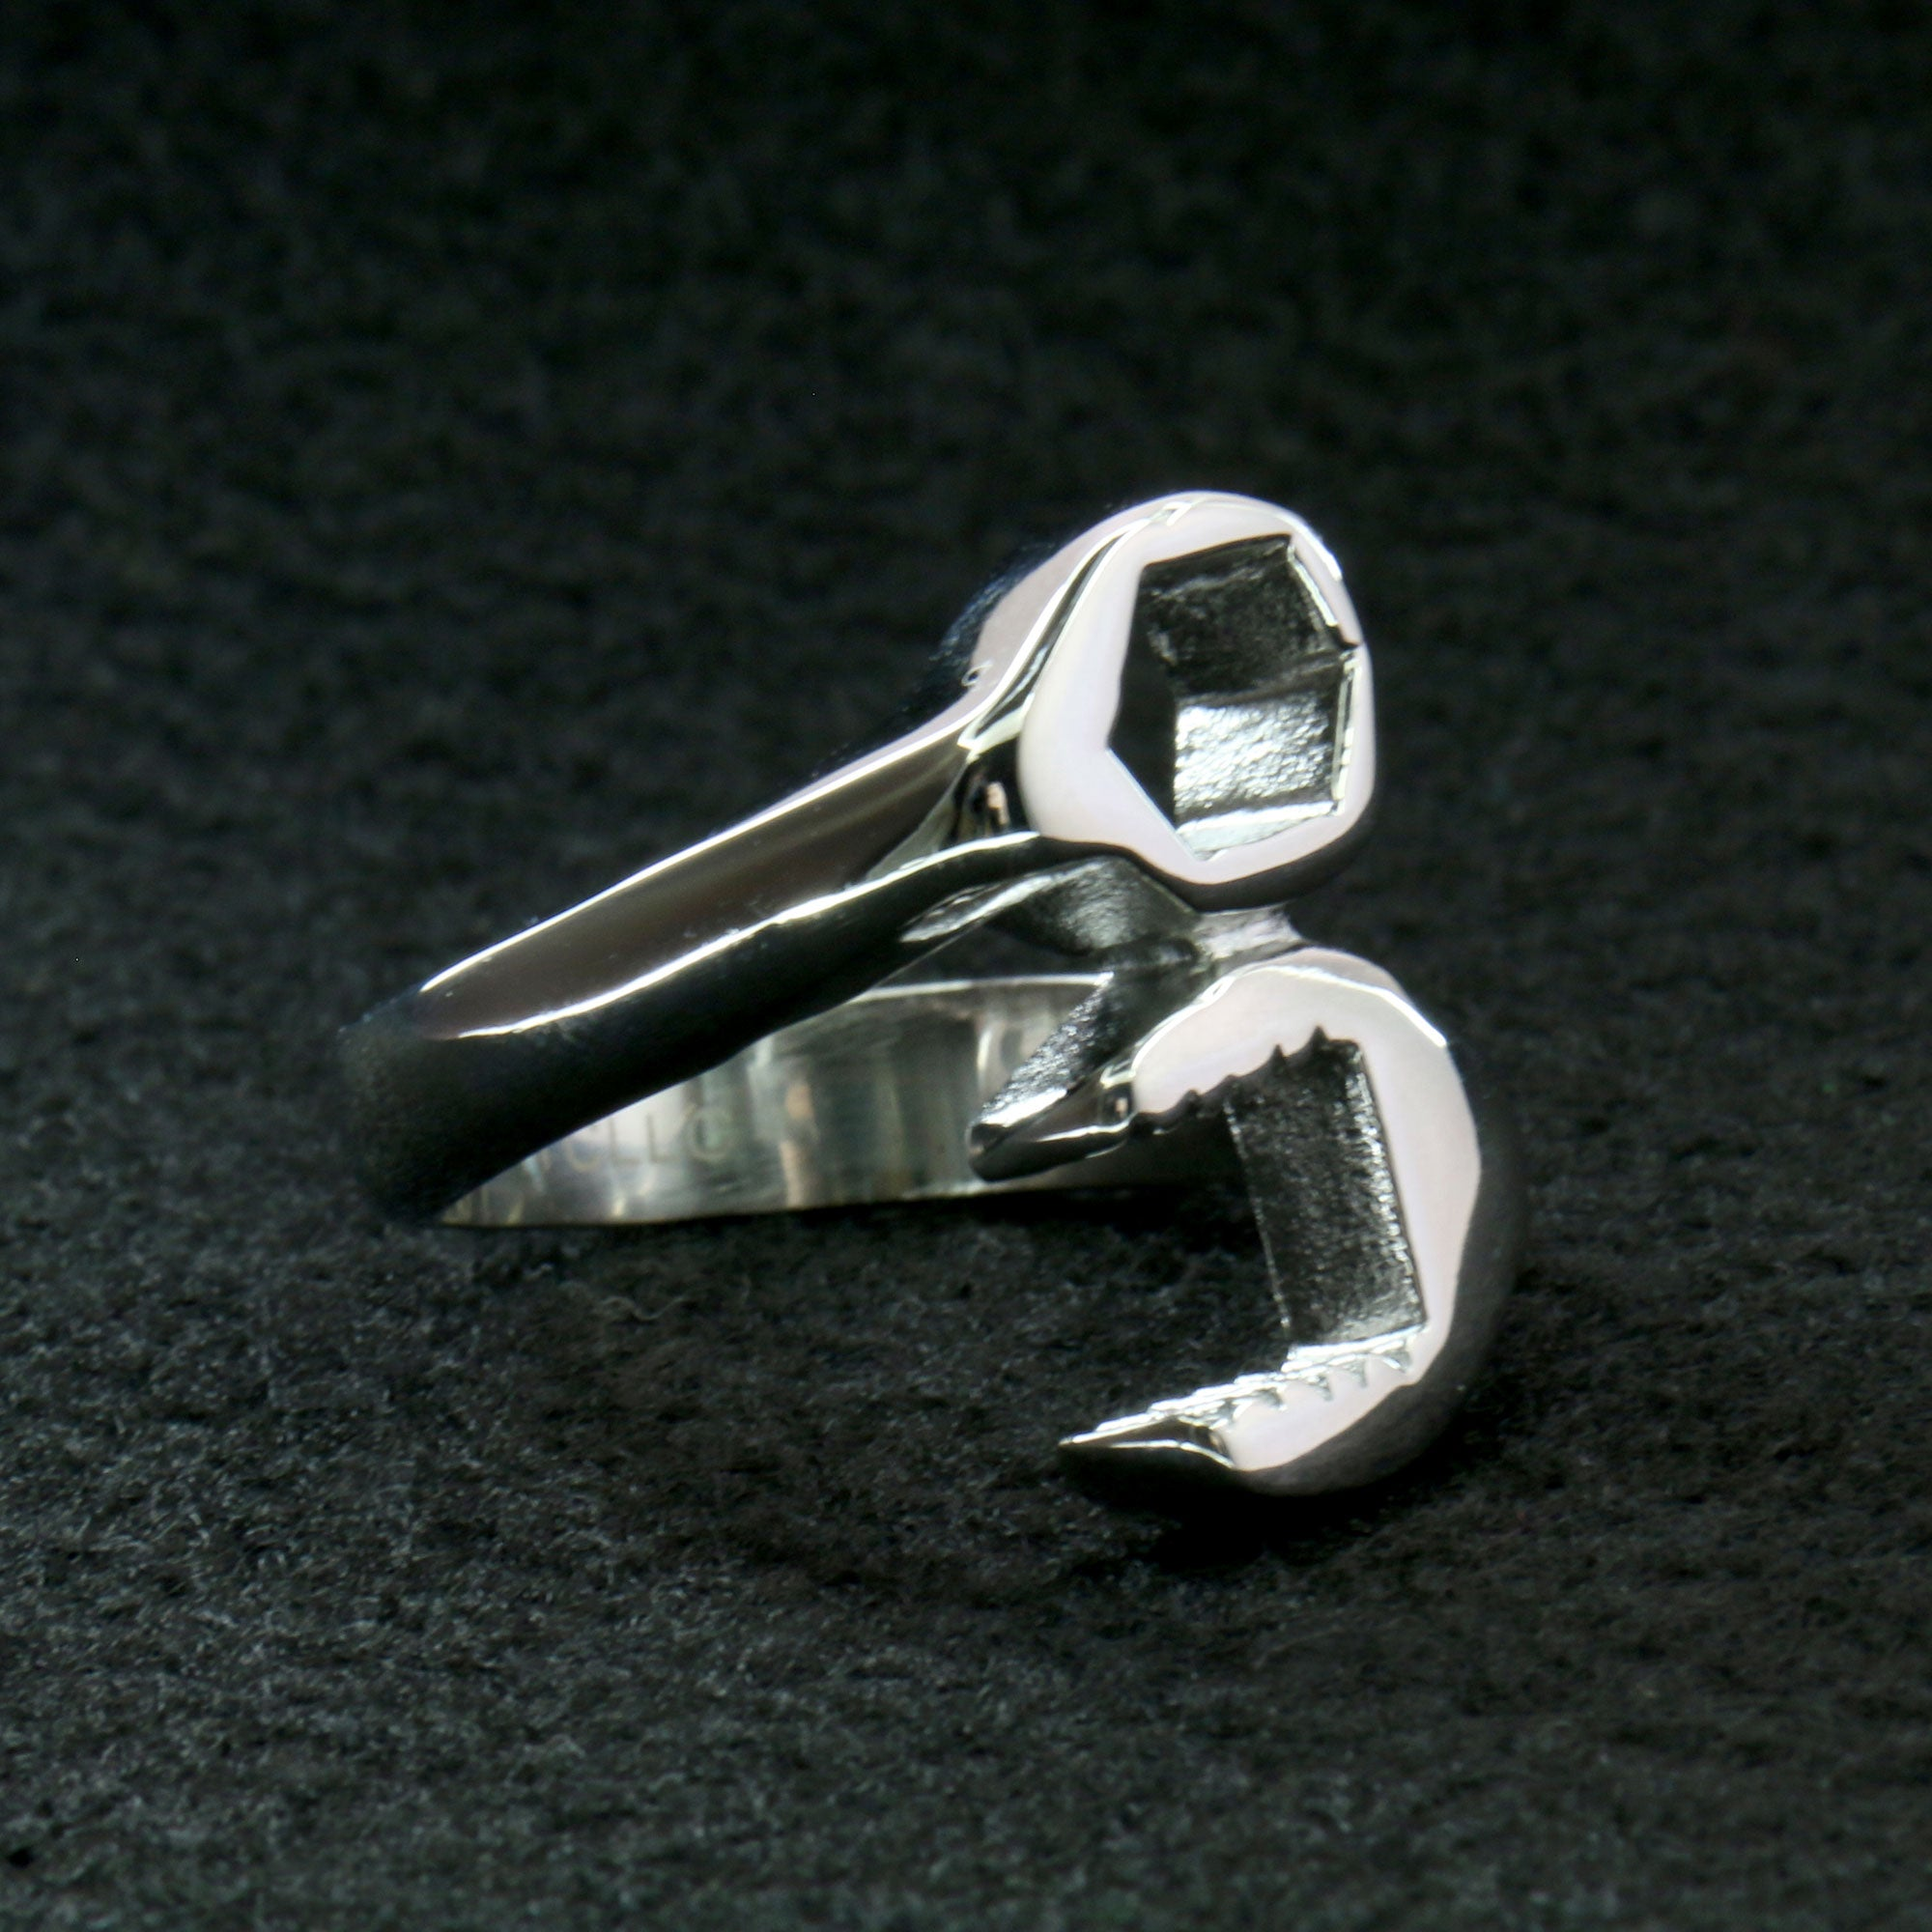 Hot Leathers Wrench Ring